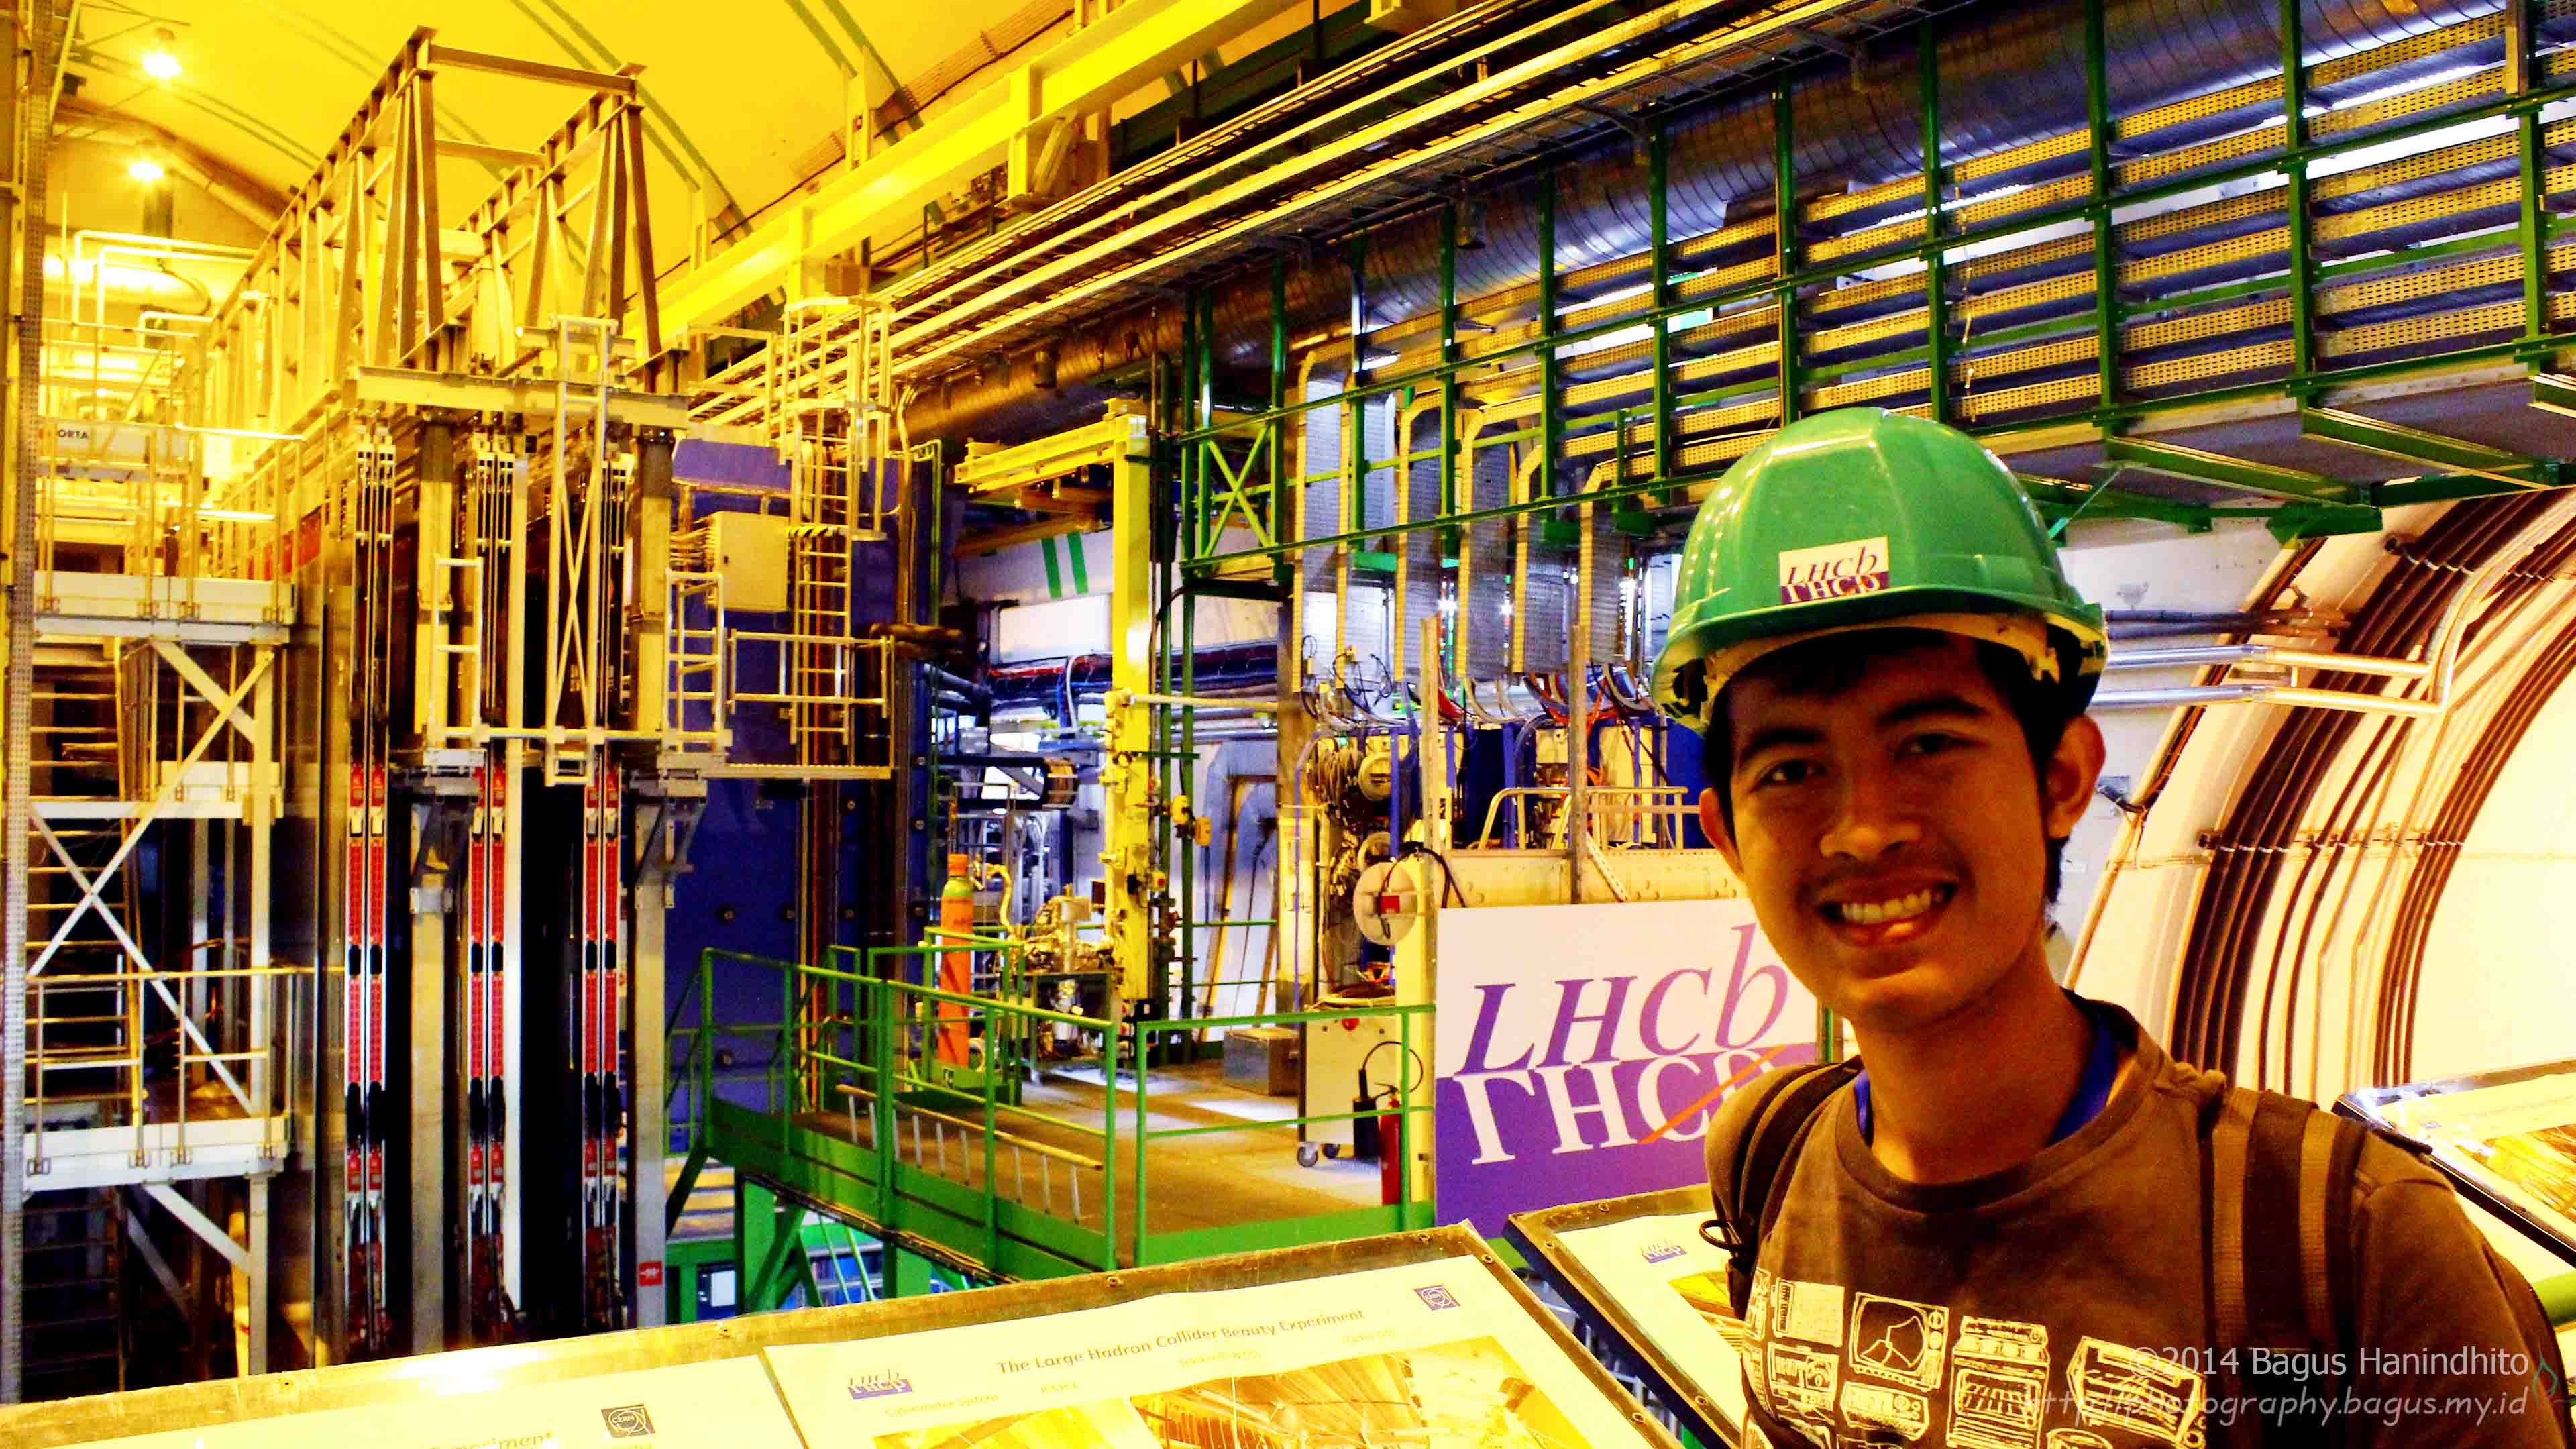 I am in front of the LHCb particle detector.